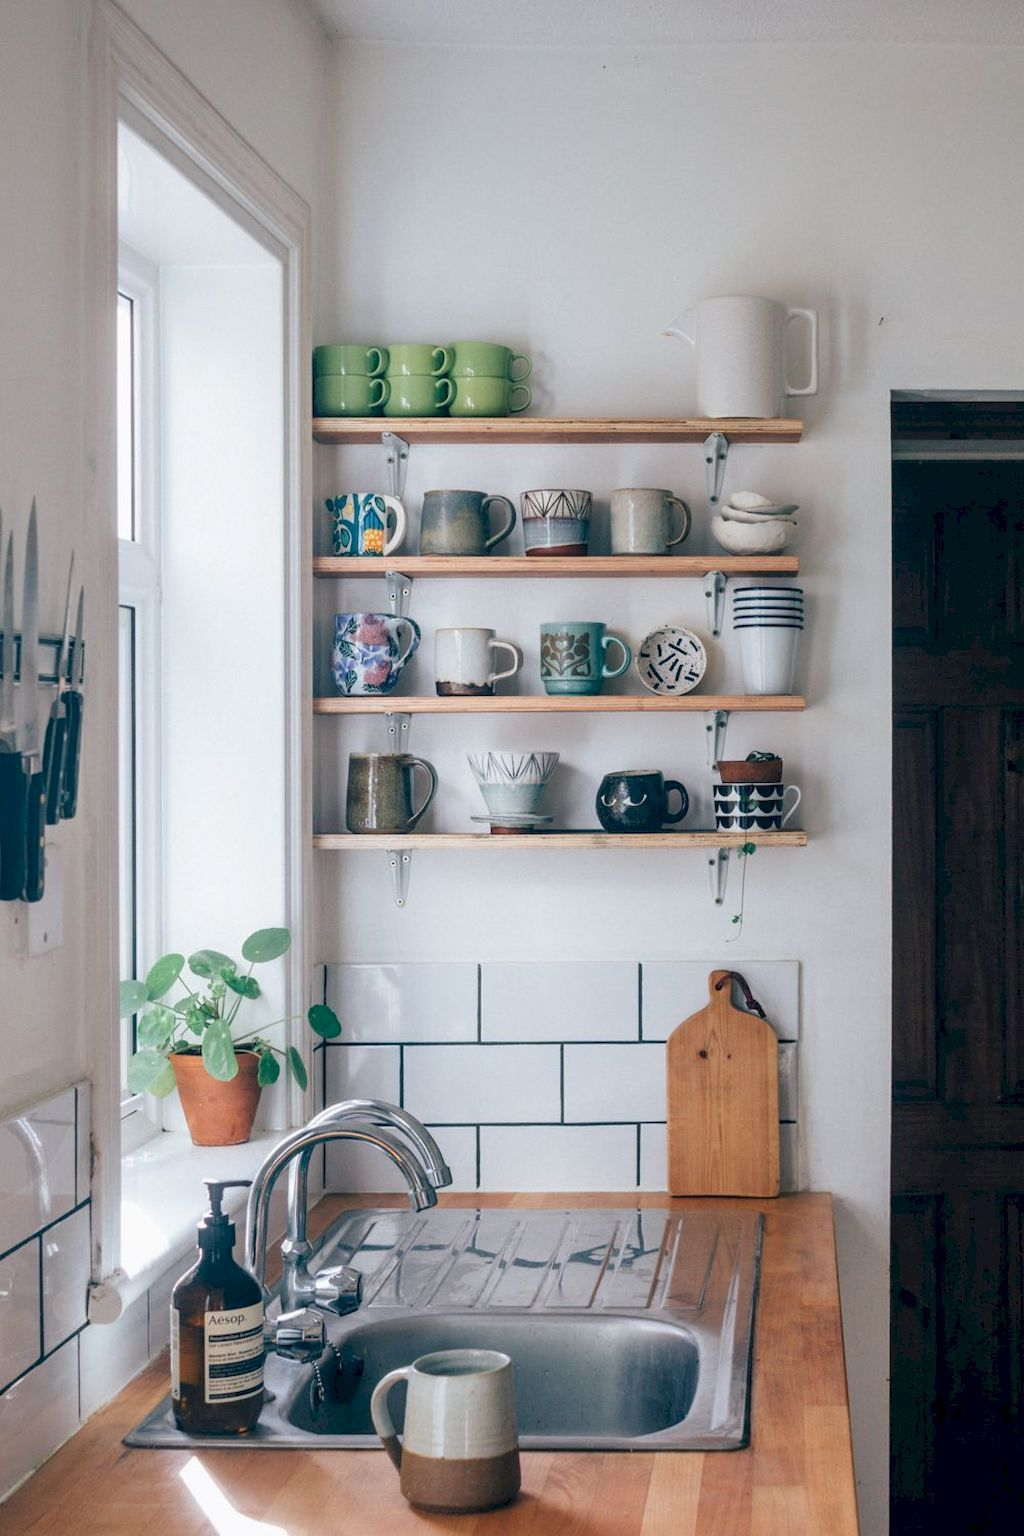 Astonishing Storage Ideas For Small Kitchens That Look Compact And